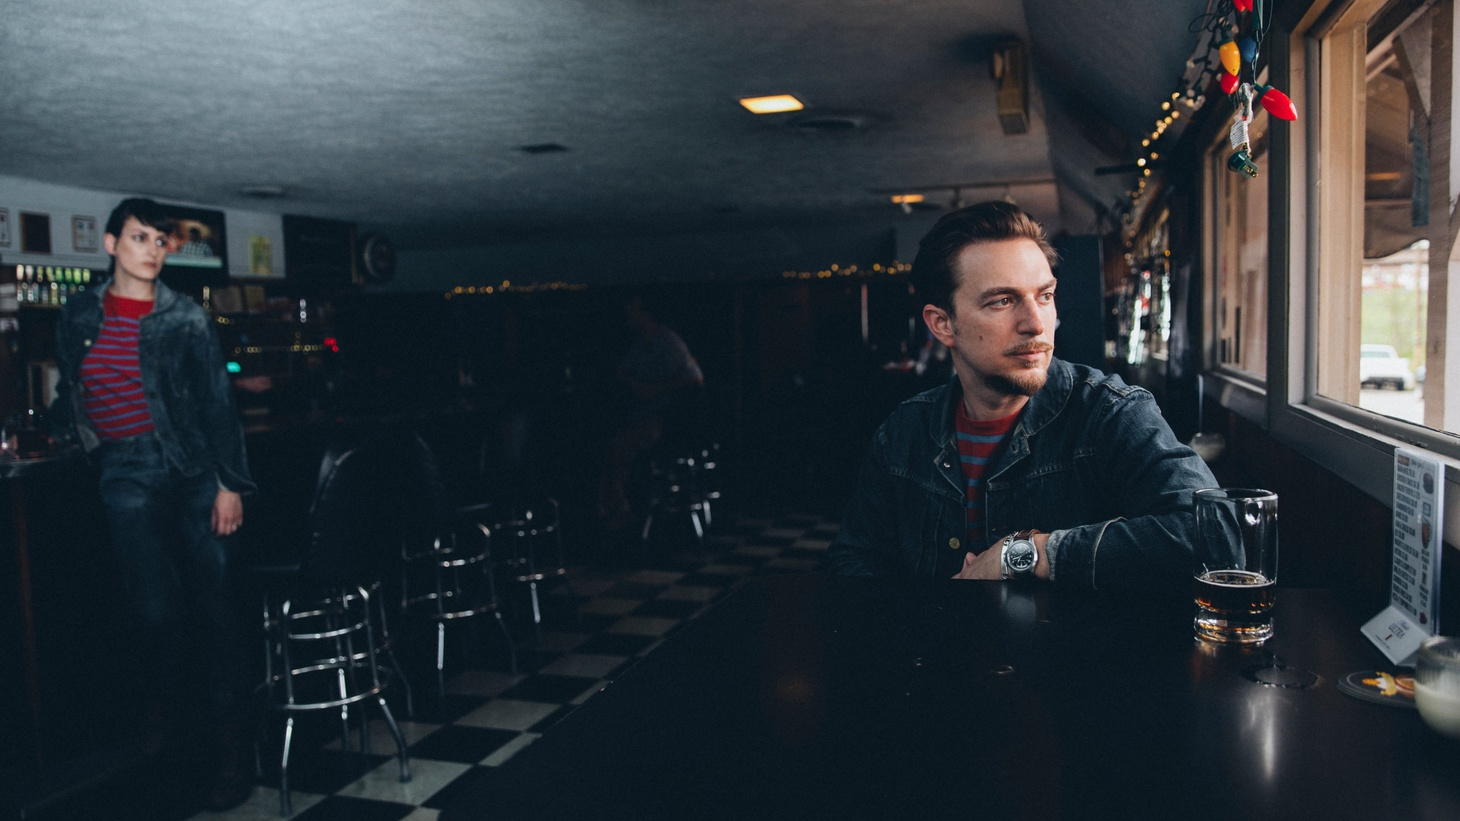 From historic RCA Studio B in Nashville, where the ghost of music past lingers, JD McPherson has recorded a cathartic album that traces his creative process as he navigates his adopted Tennessee surroundings.